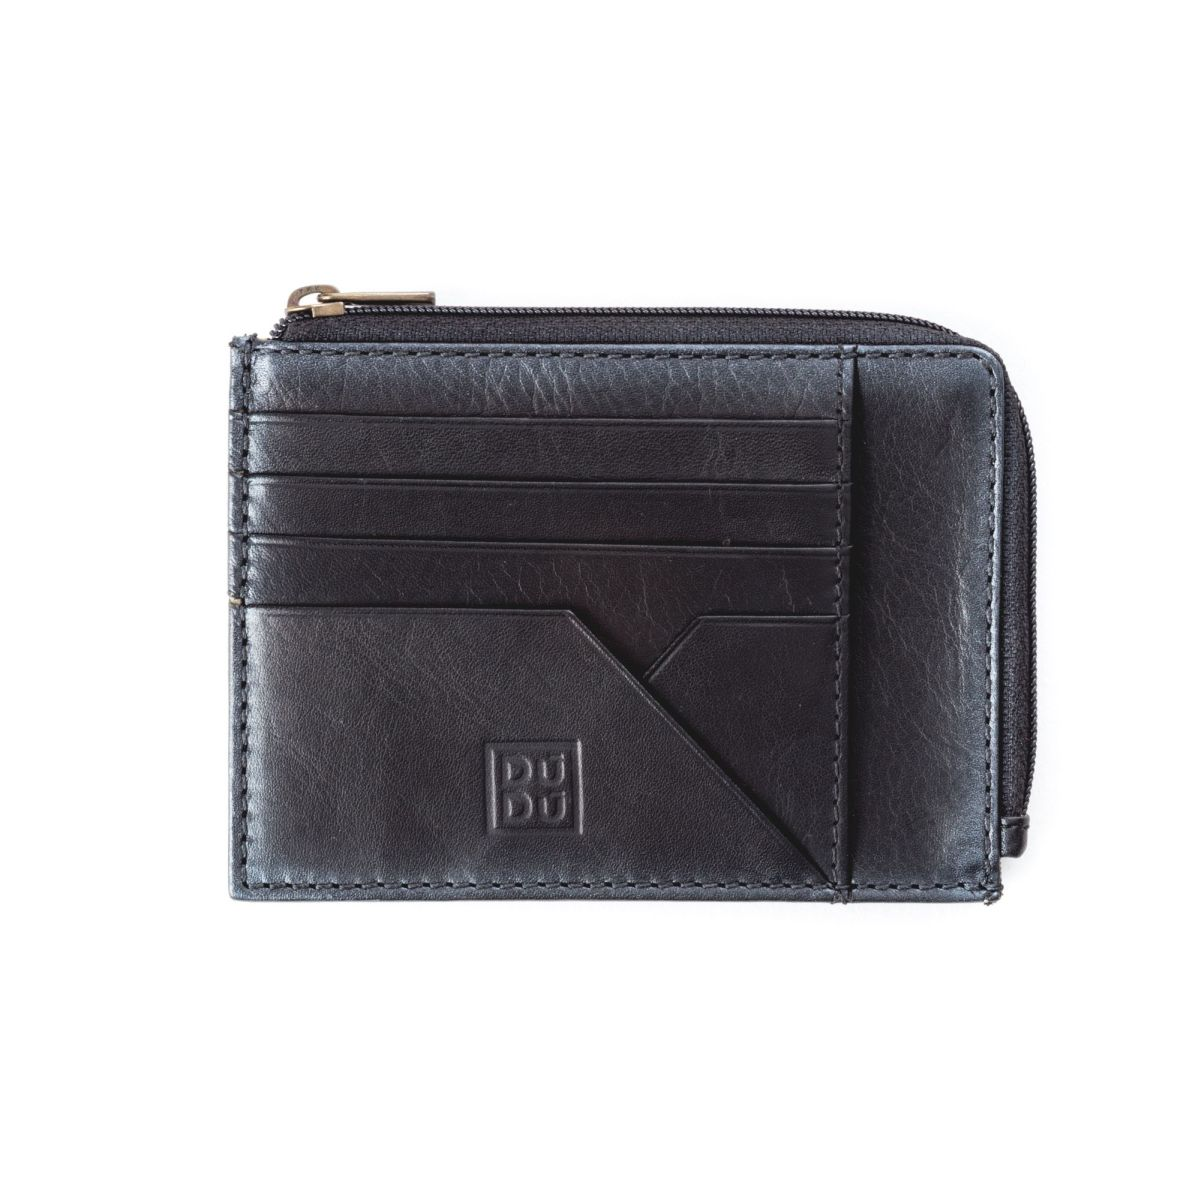 Flat Leather Wallet - Black